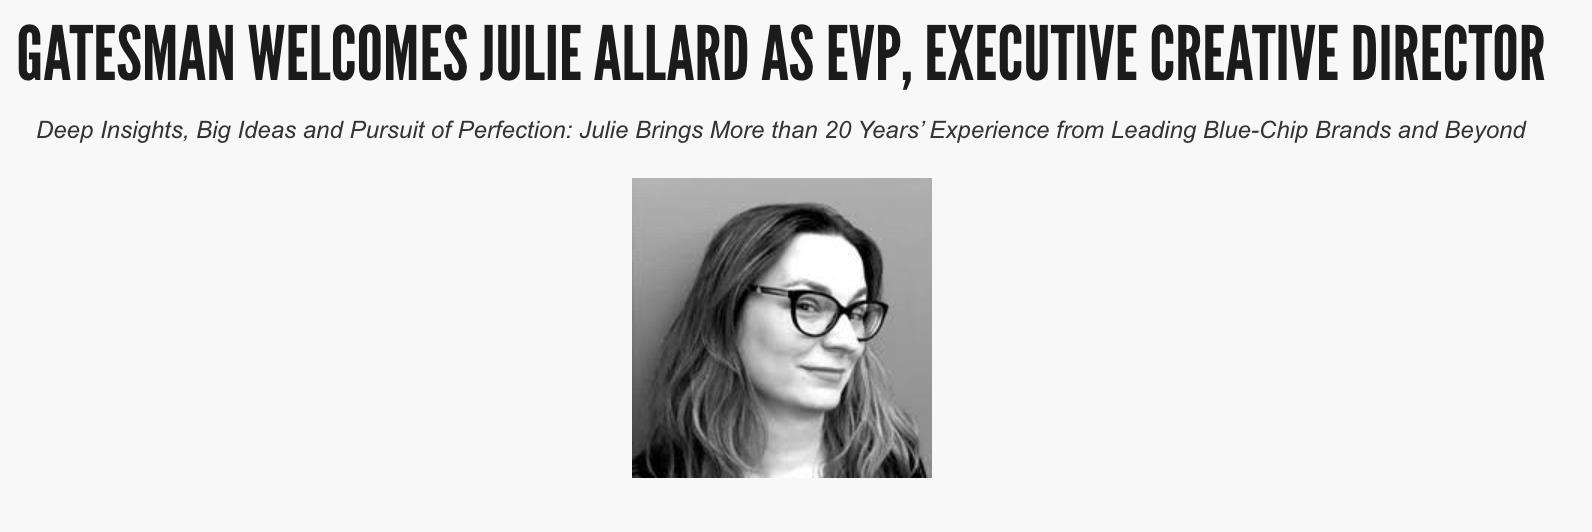 Gatesman Agency - GATESMAN WELCOMES JULIE ALLARD AS EVP, EXECUTIVE CREATIVE DIRECTOR